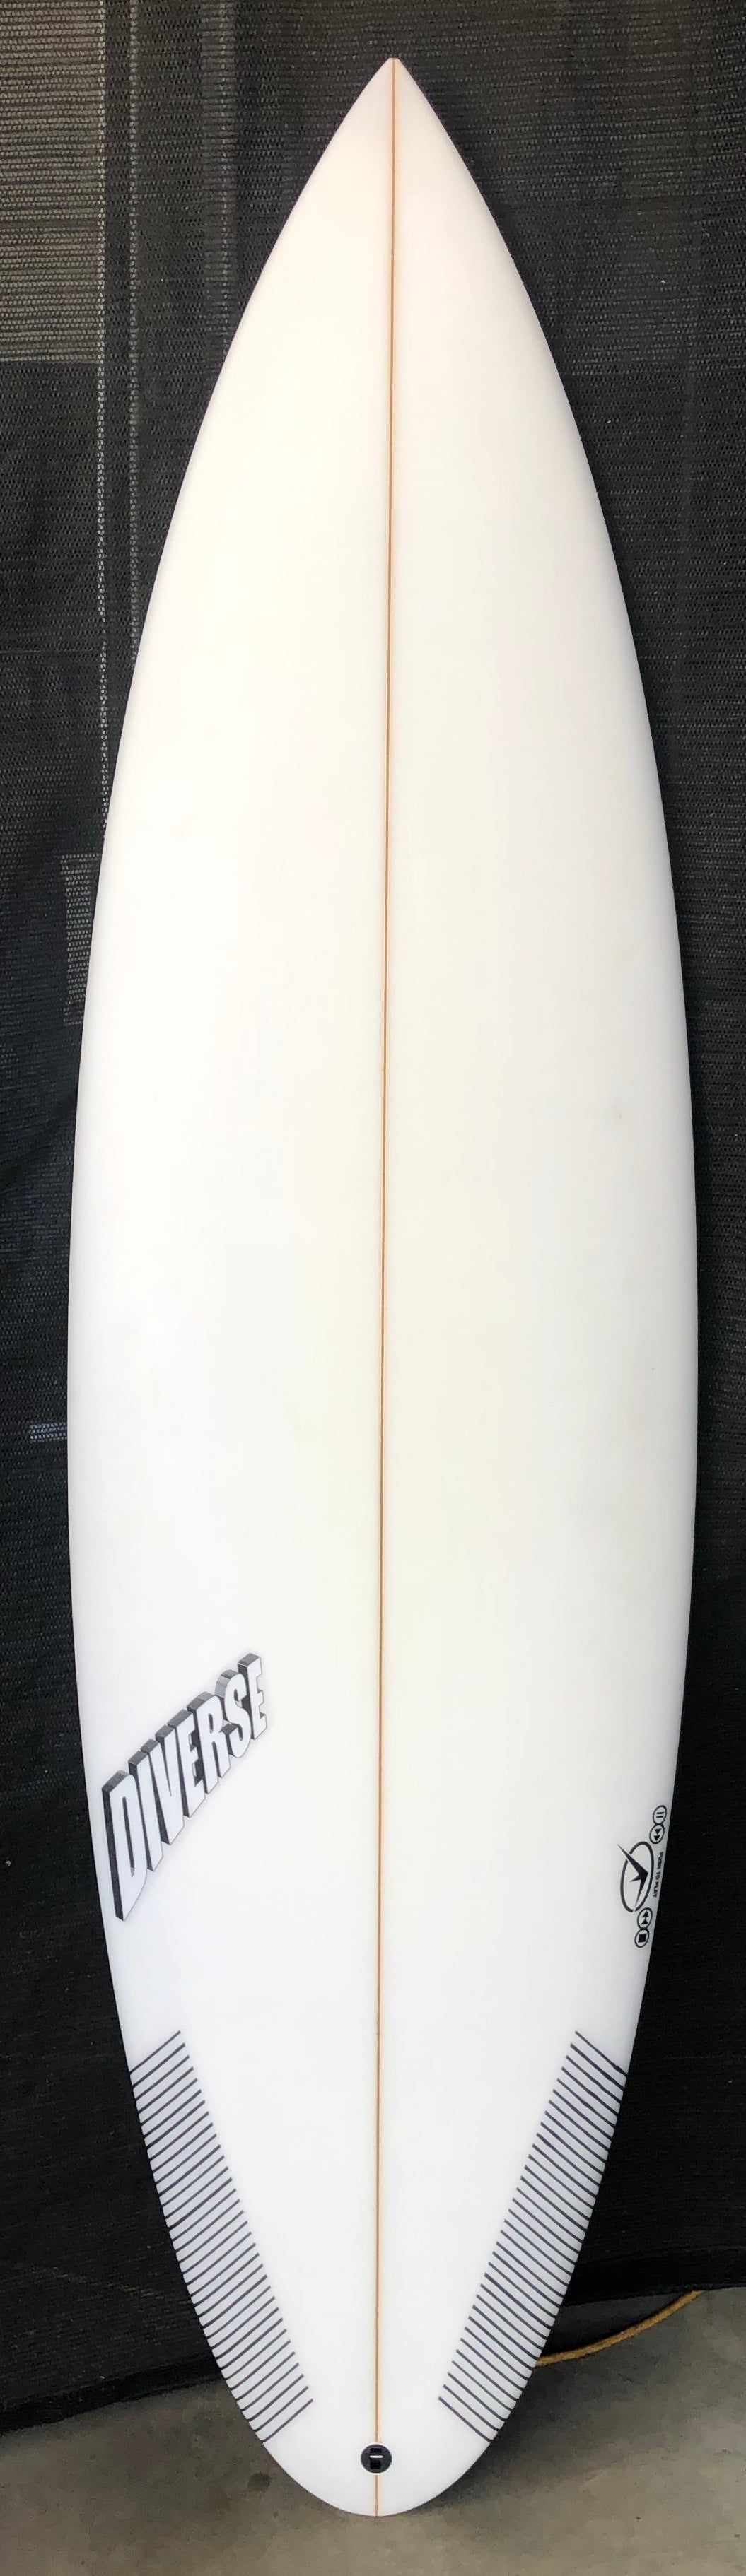 6'1 Strike Mission Step up performance PU Shortboard